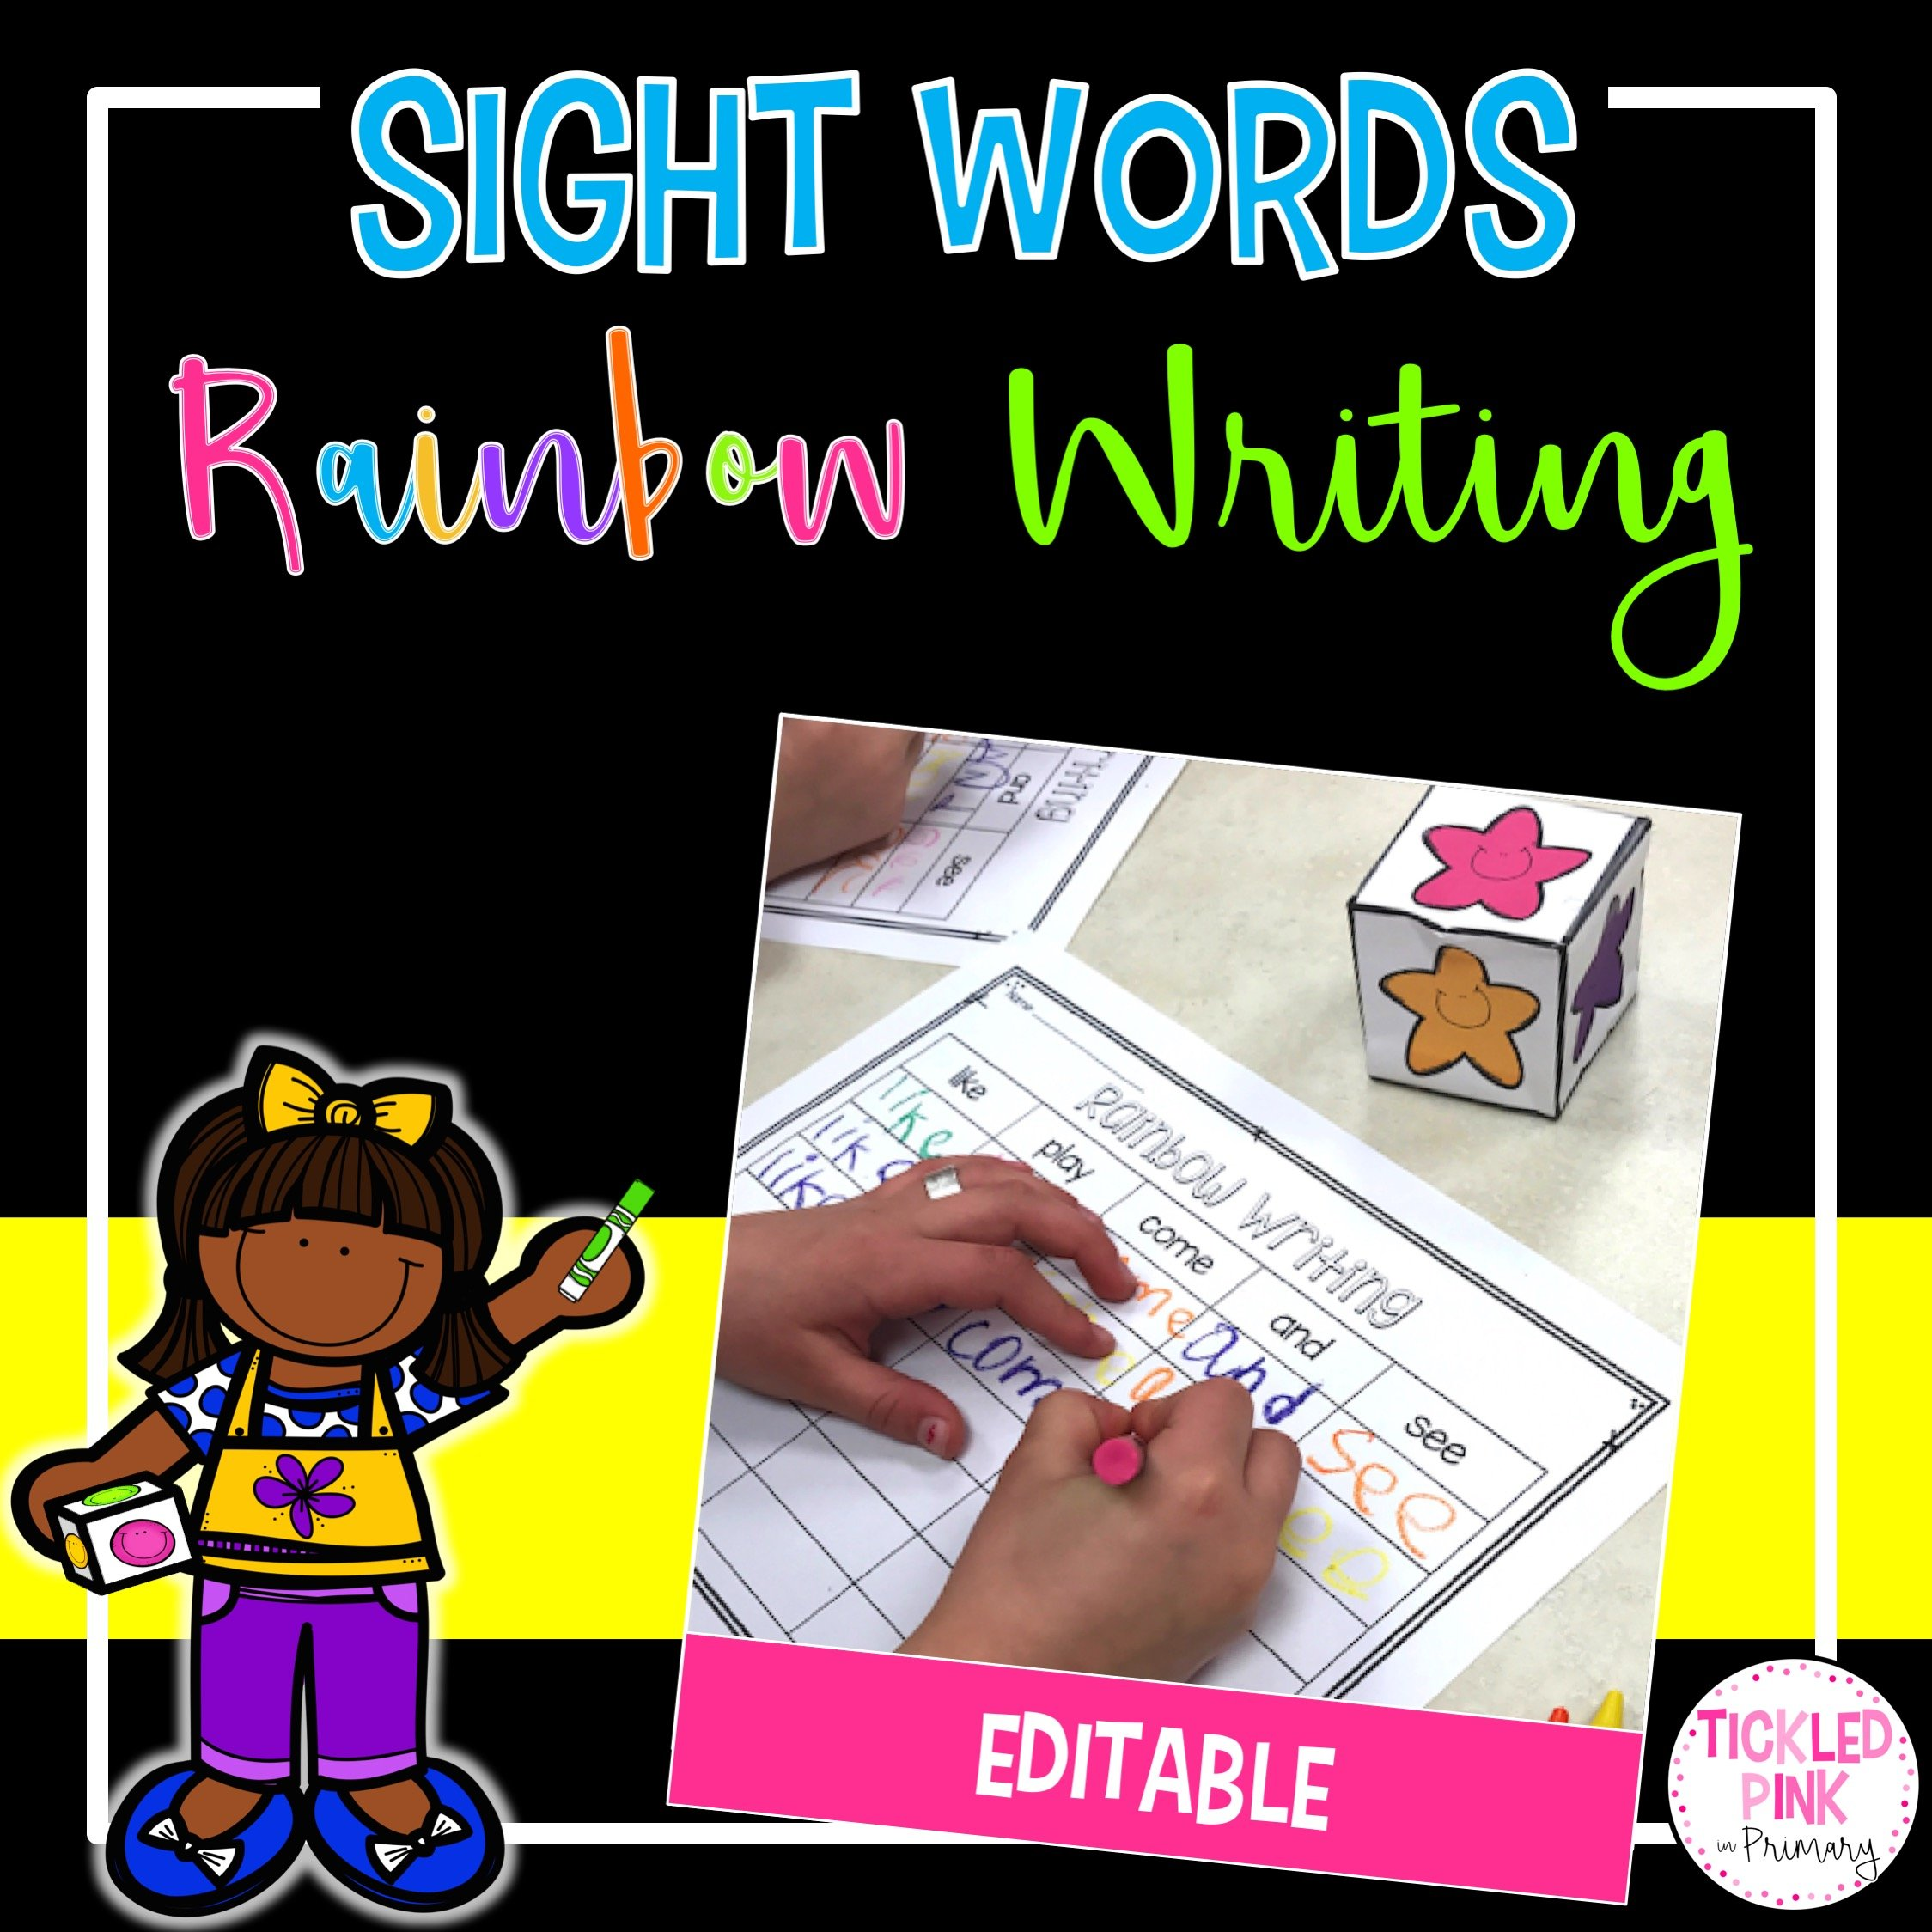 Editable Sight Words Rainbow Writing Tickled Pink In Primary